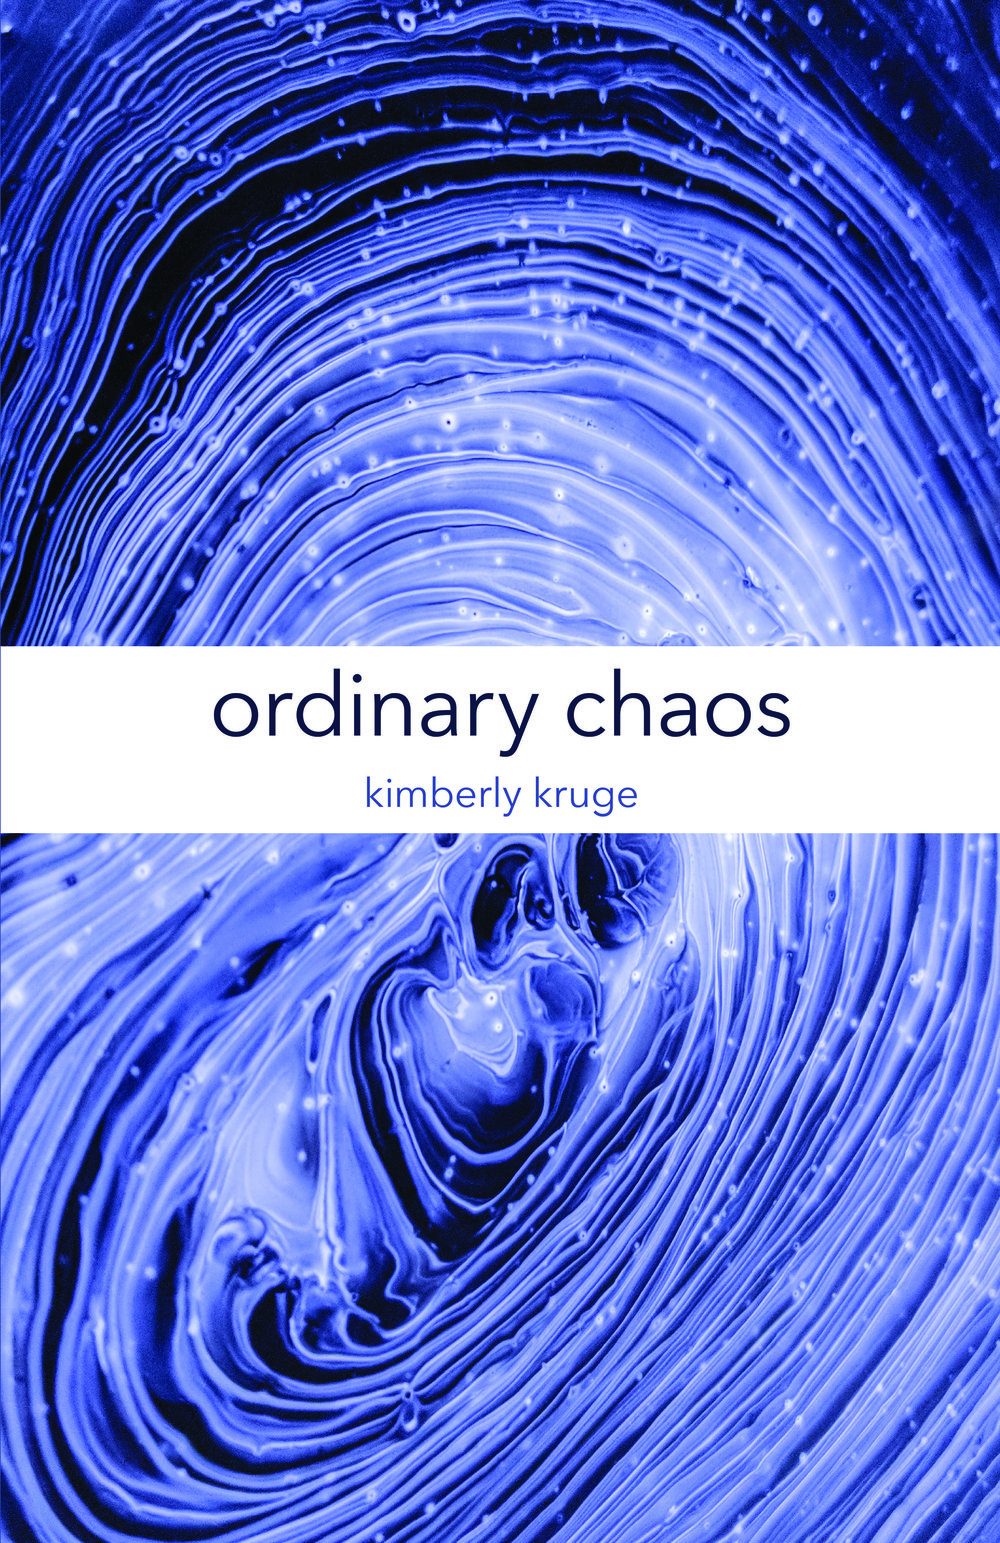 19_Kruge_OrdinaryChaos_COVER_FRONT copy.jpg